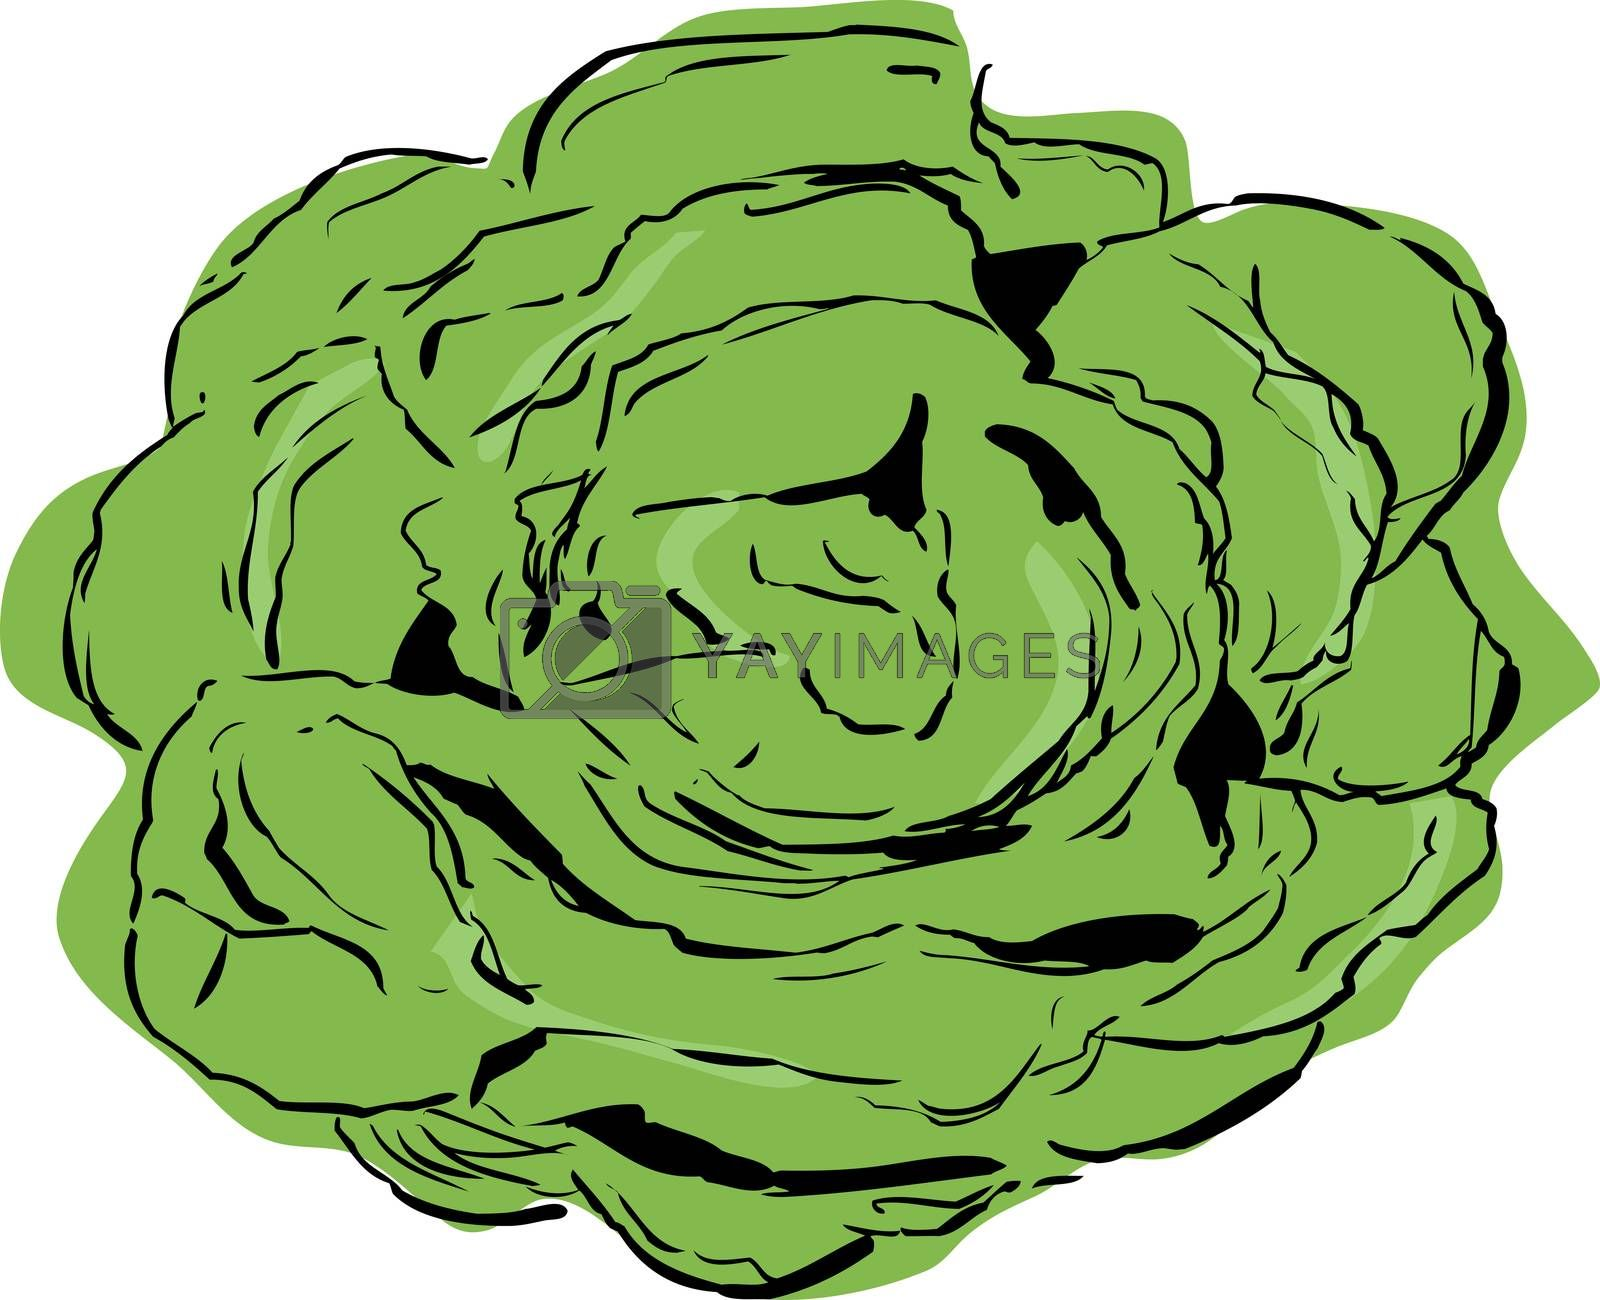 Top down view on large open head of bibb lettuce over white